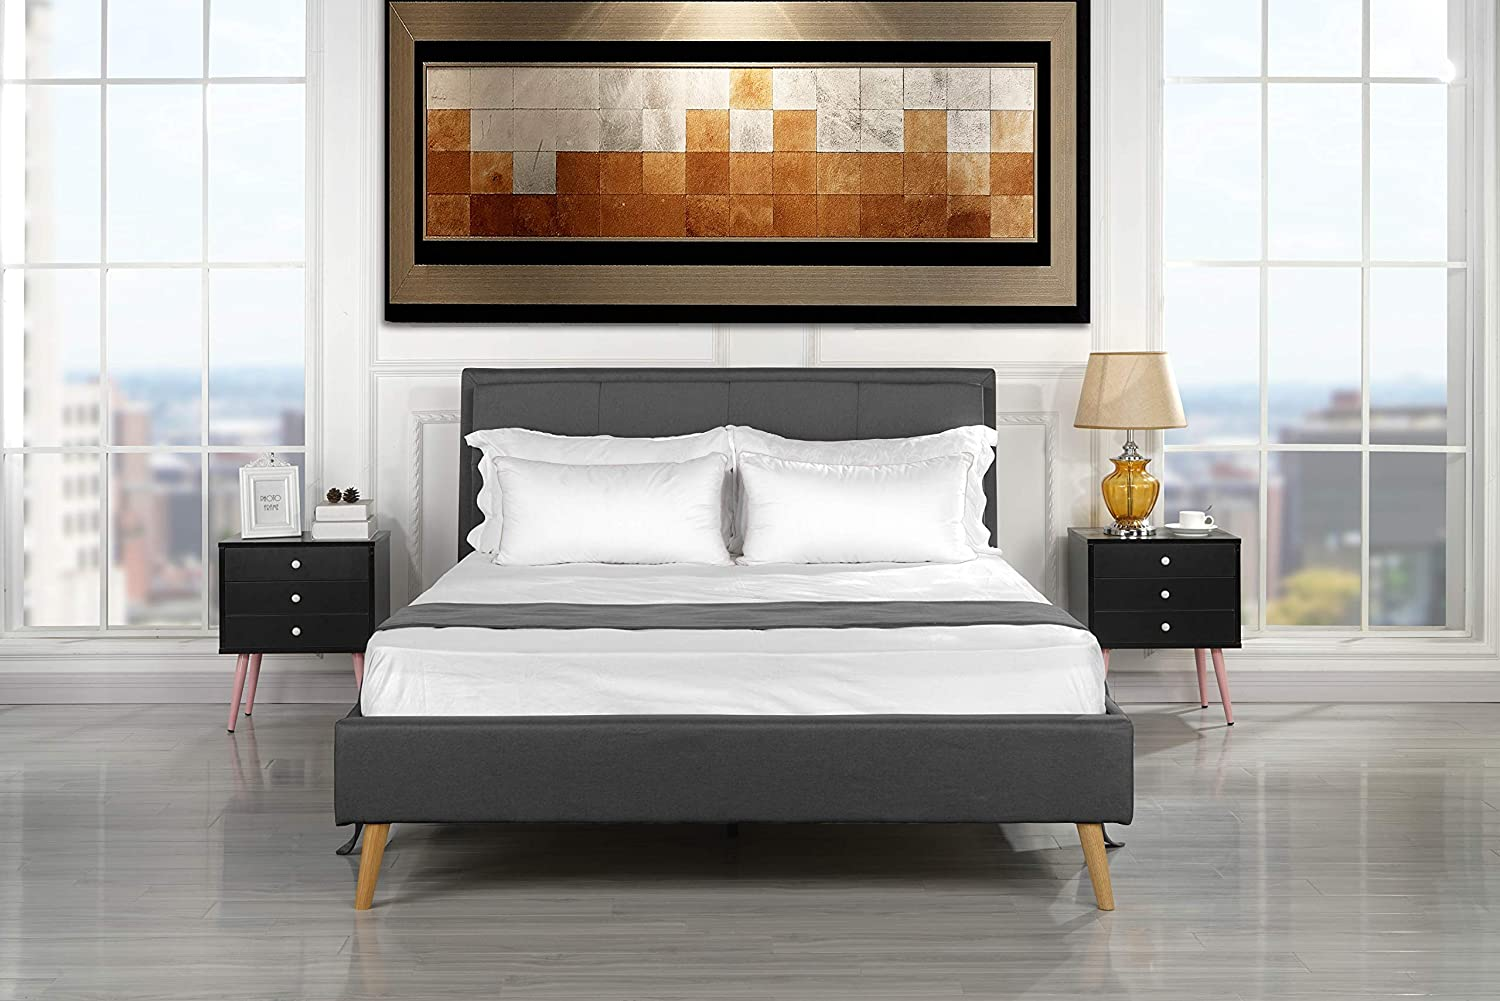 Mid Century Modern Upholstered Bed Frame with Tufted Headboard Queen, Dark Grey